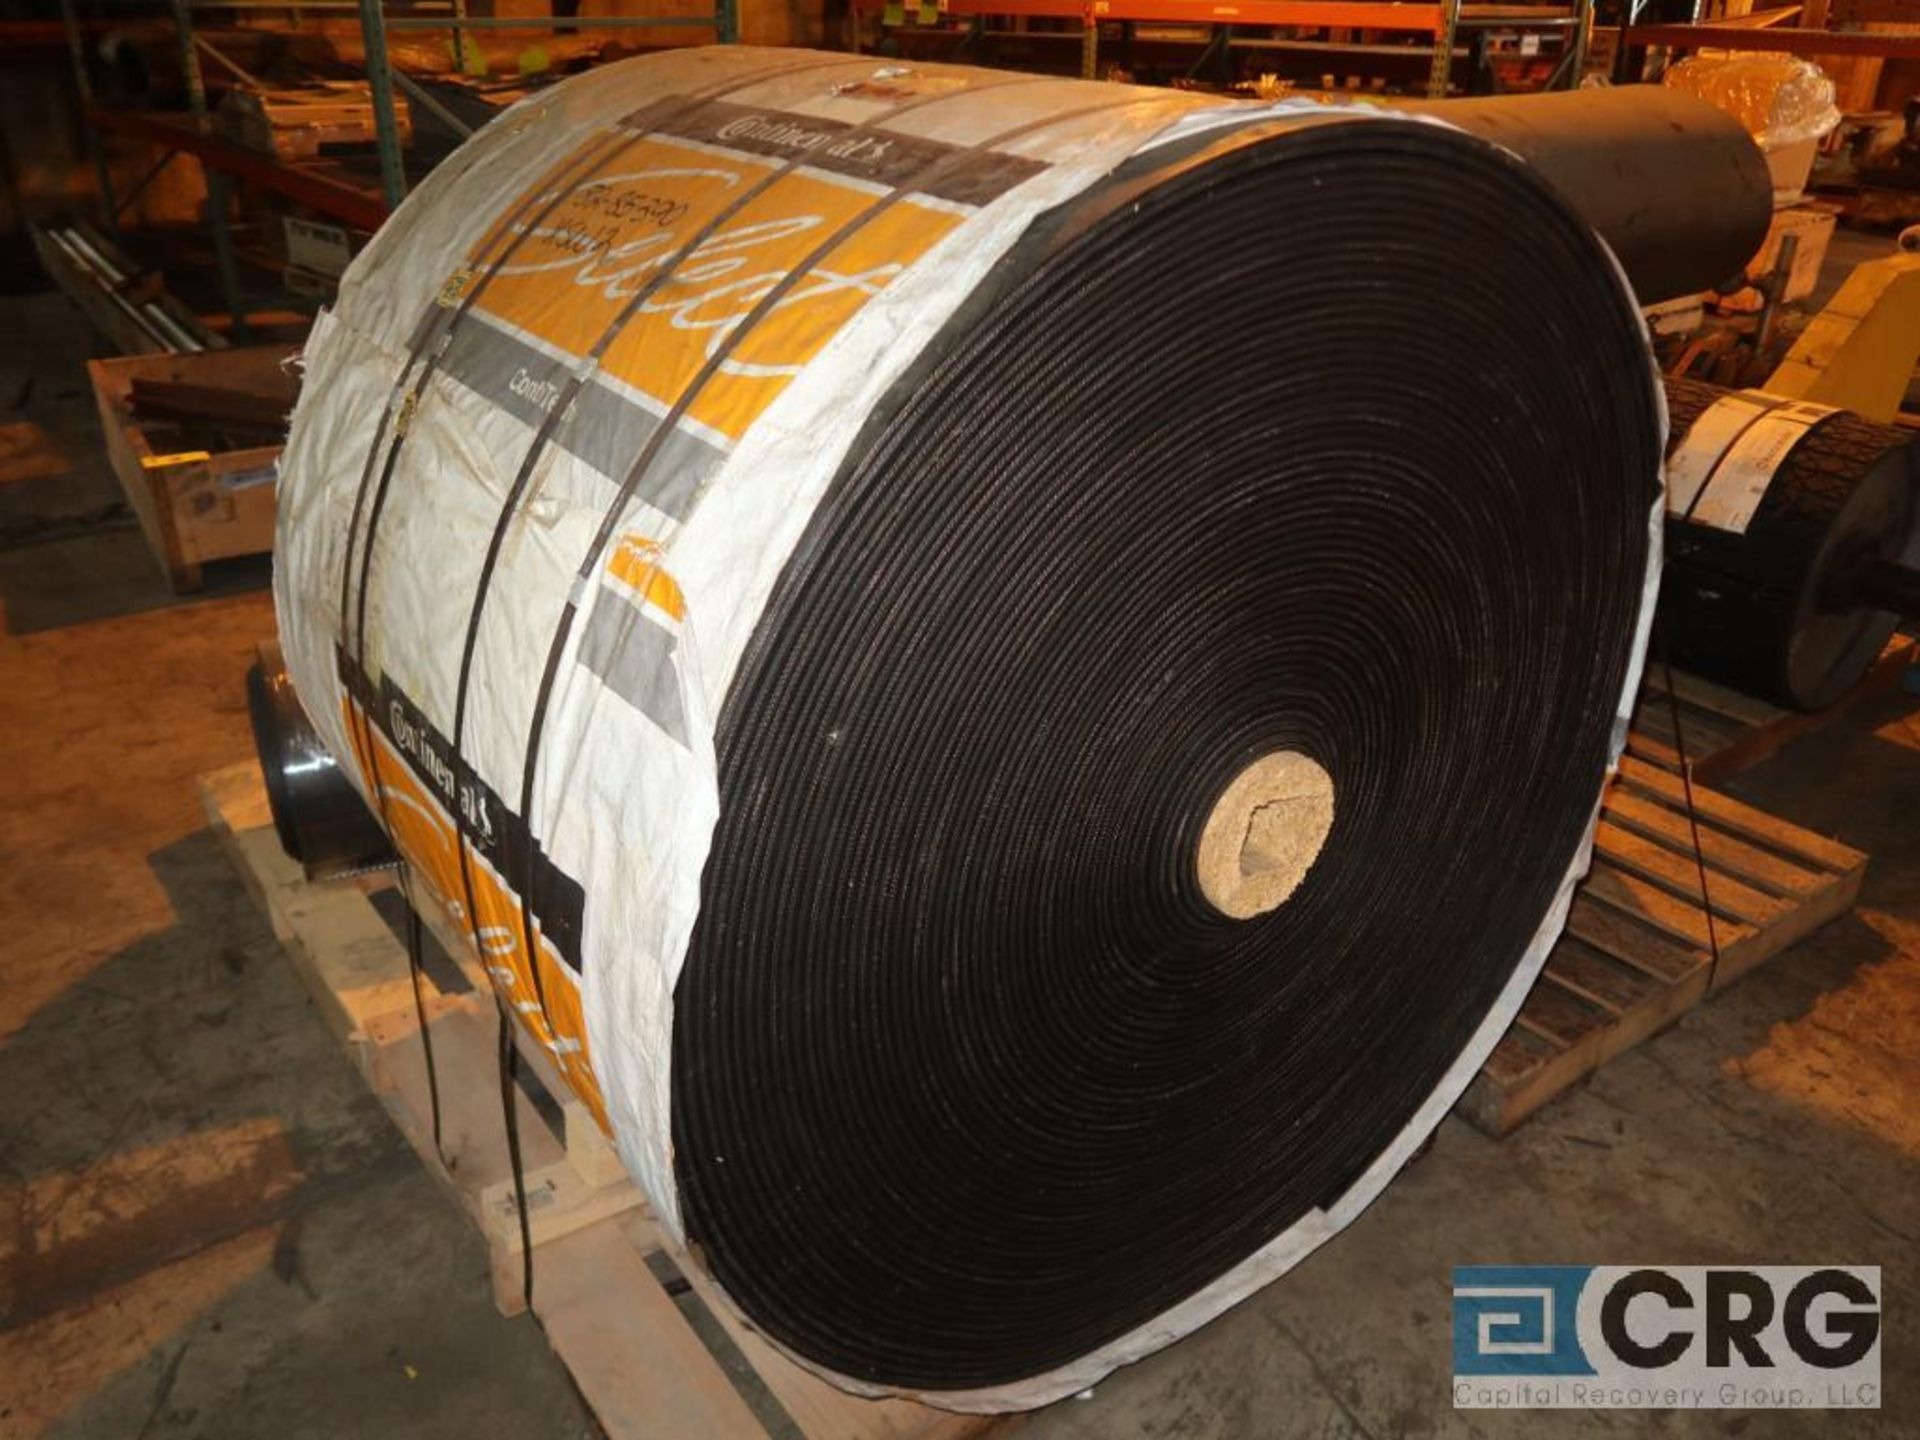 Lot of conveyor parts including belting, pulleys, and rollers (Next Bay Cage Area) - Image 2 of 5